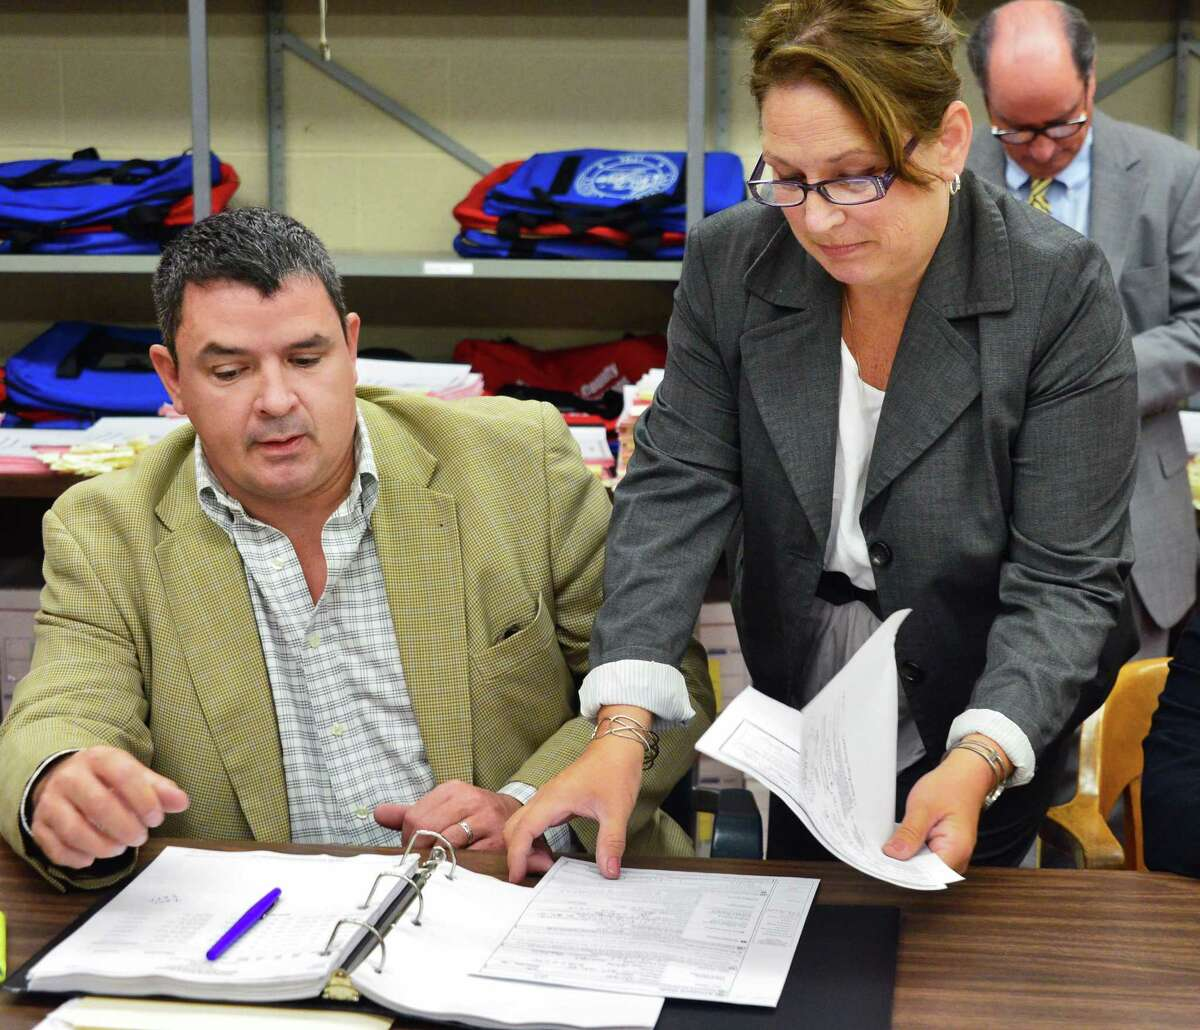 James Walsh, left, and Saratoga County Board of Elections clerk Donna Gunderson seen during a count of absentee ballots in September 2013 in Ballston Spa. Walsh in 2017 is both representing the town of Ballston in a lawsuit brought by the state Department of Agriculture and Markets and is Ballston GOP chairman. Walsh said there is no conflict of interest. (John Carl D'Annibale / Times Union)